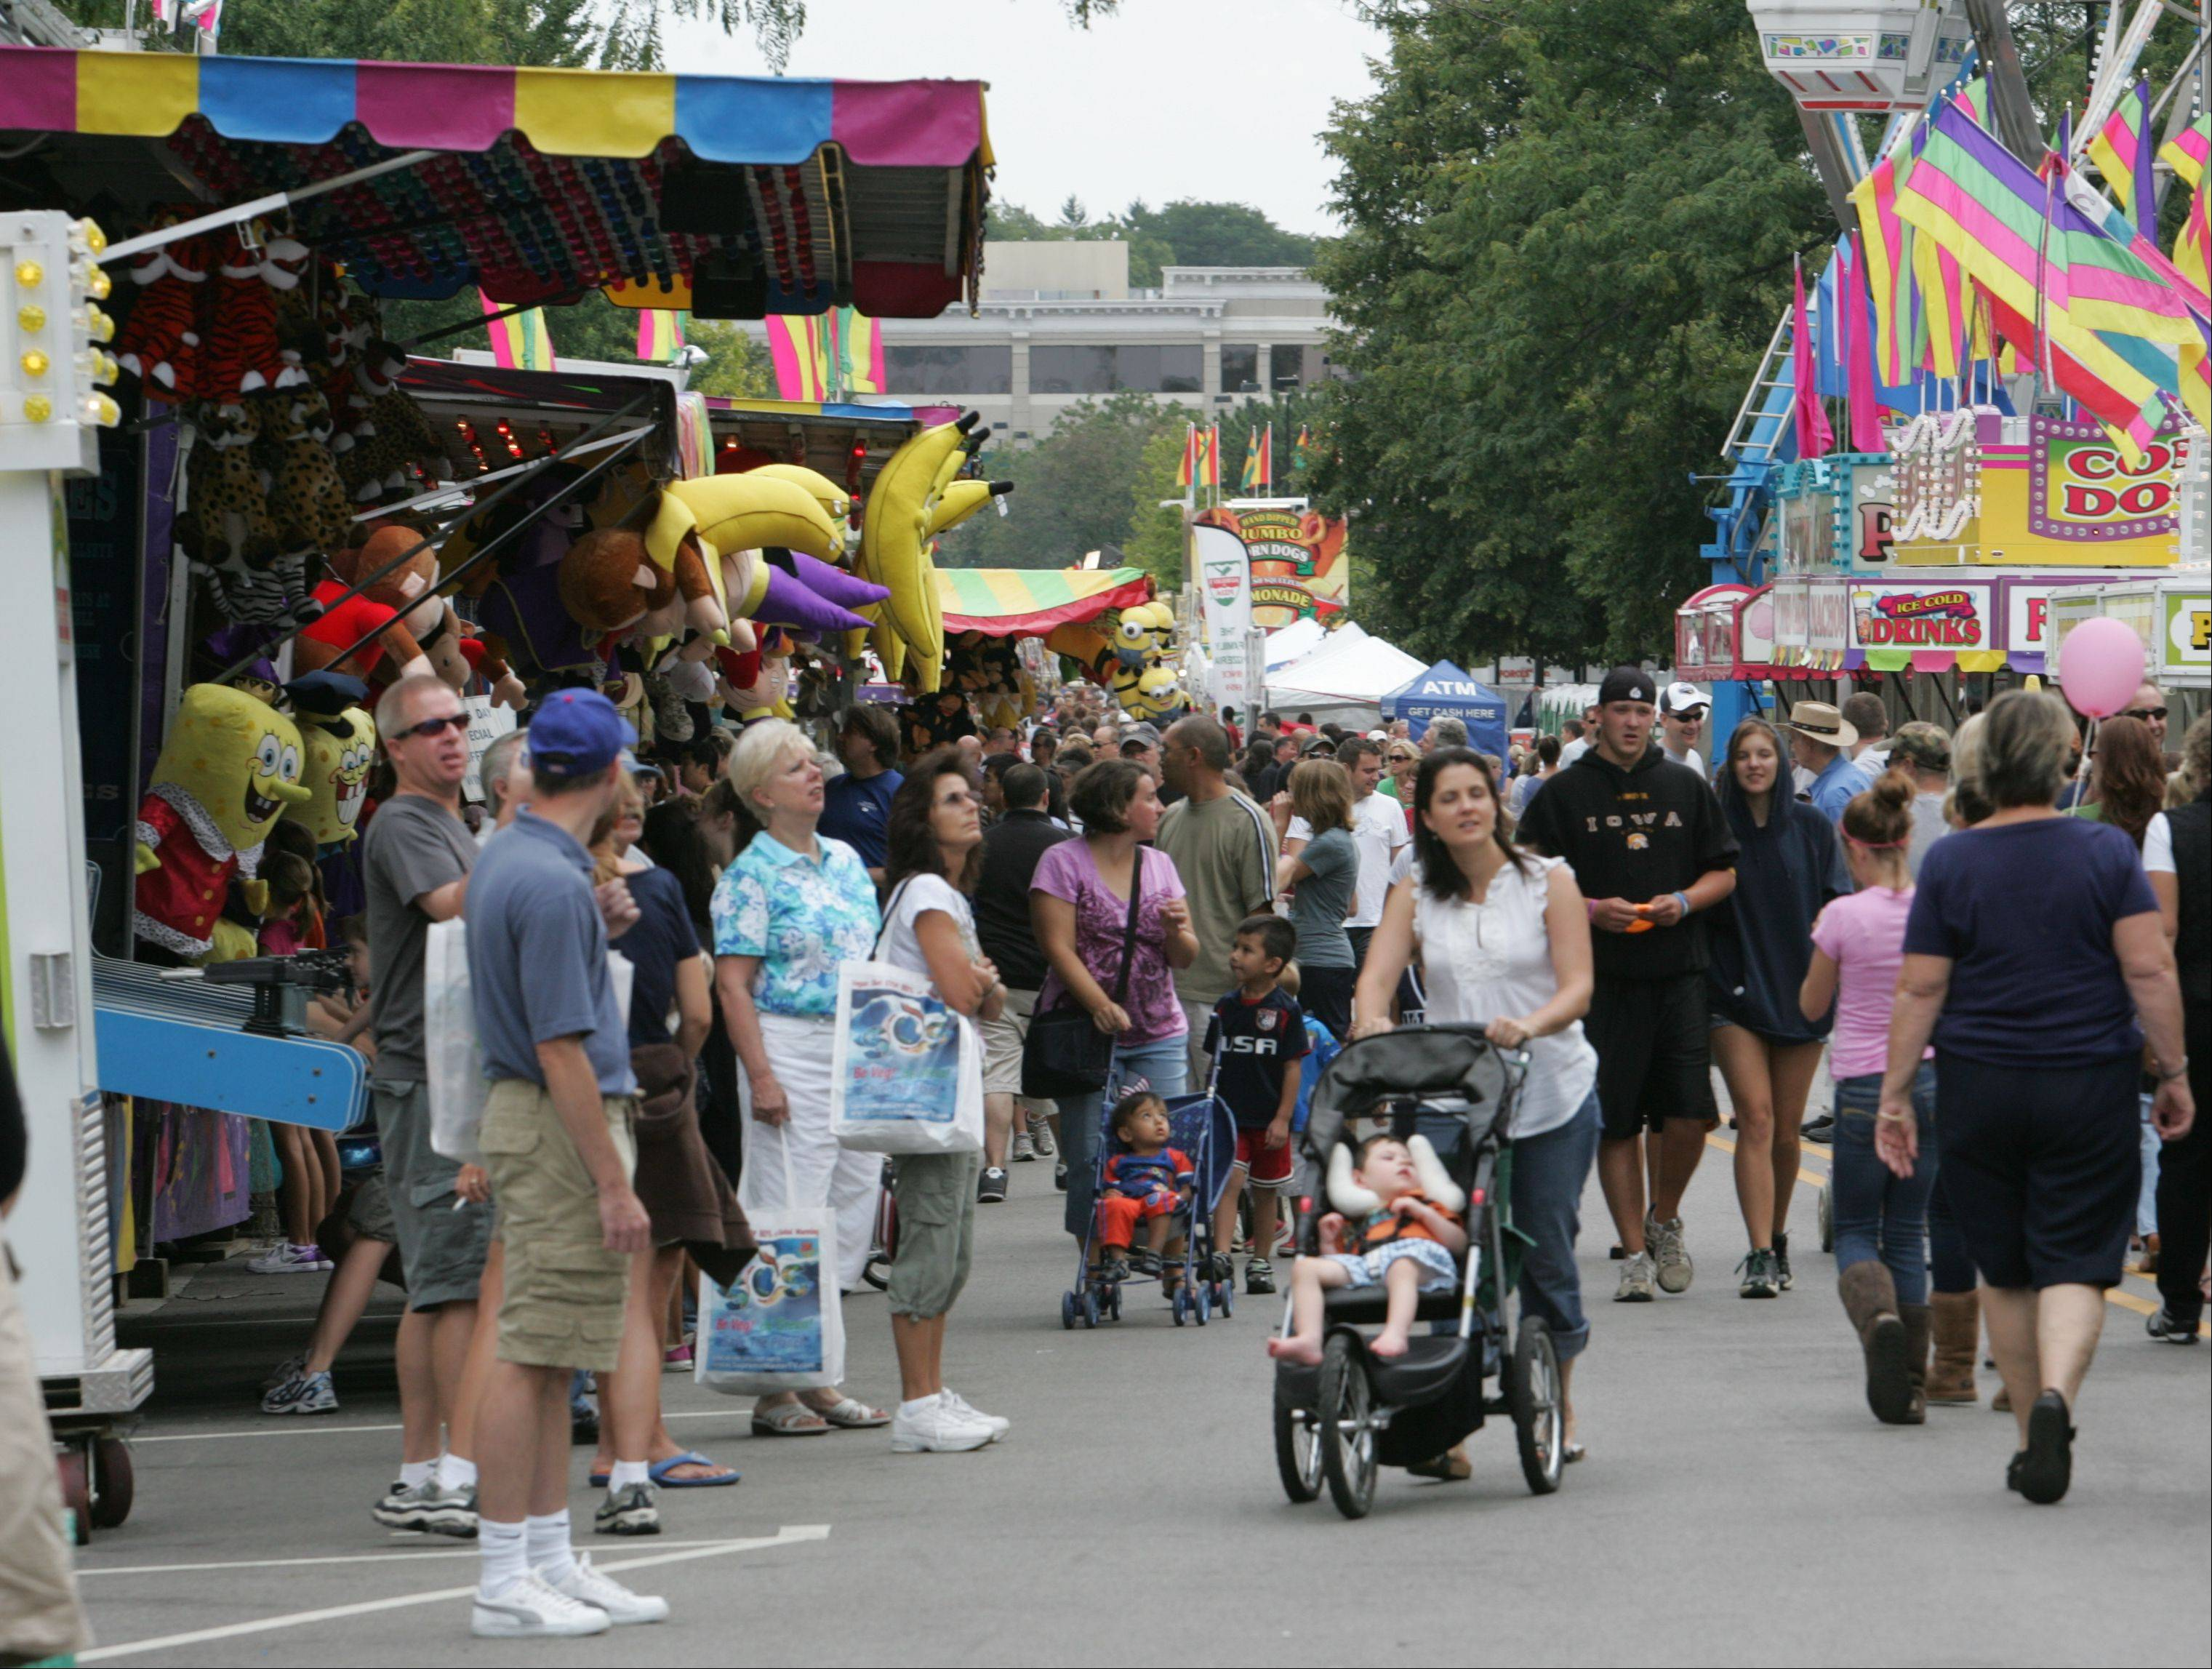 Thirsty visitors to this year's Last Fling festival in Naperville will have to buy beverage tickets worth $1 each before purchasing drinks, festival organizers told the city's liquor commission Thursday.